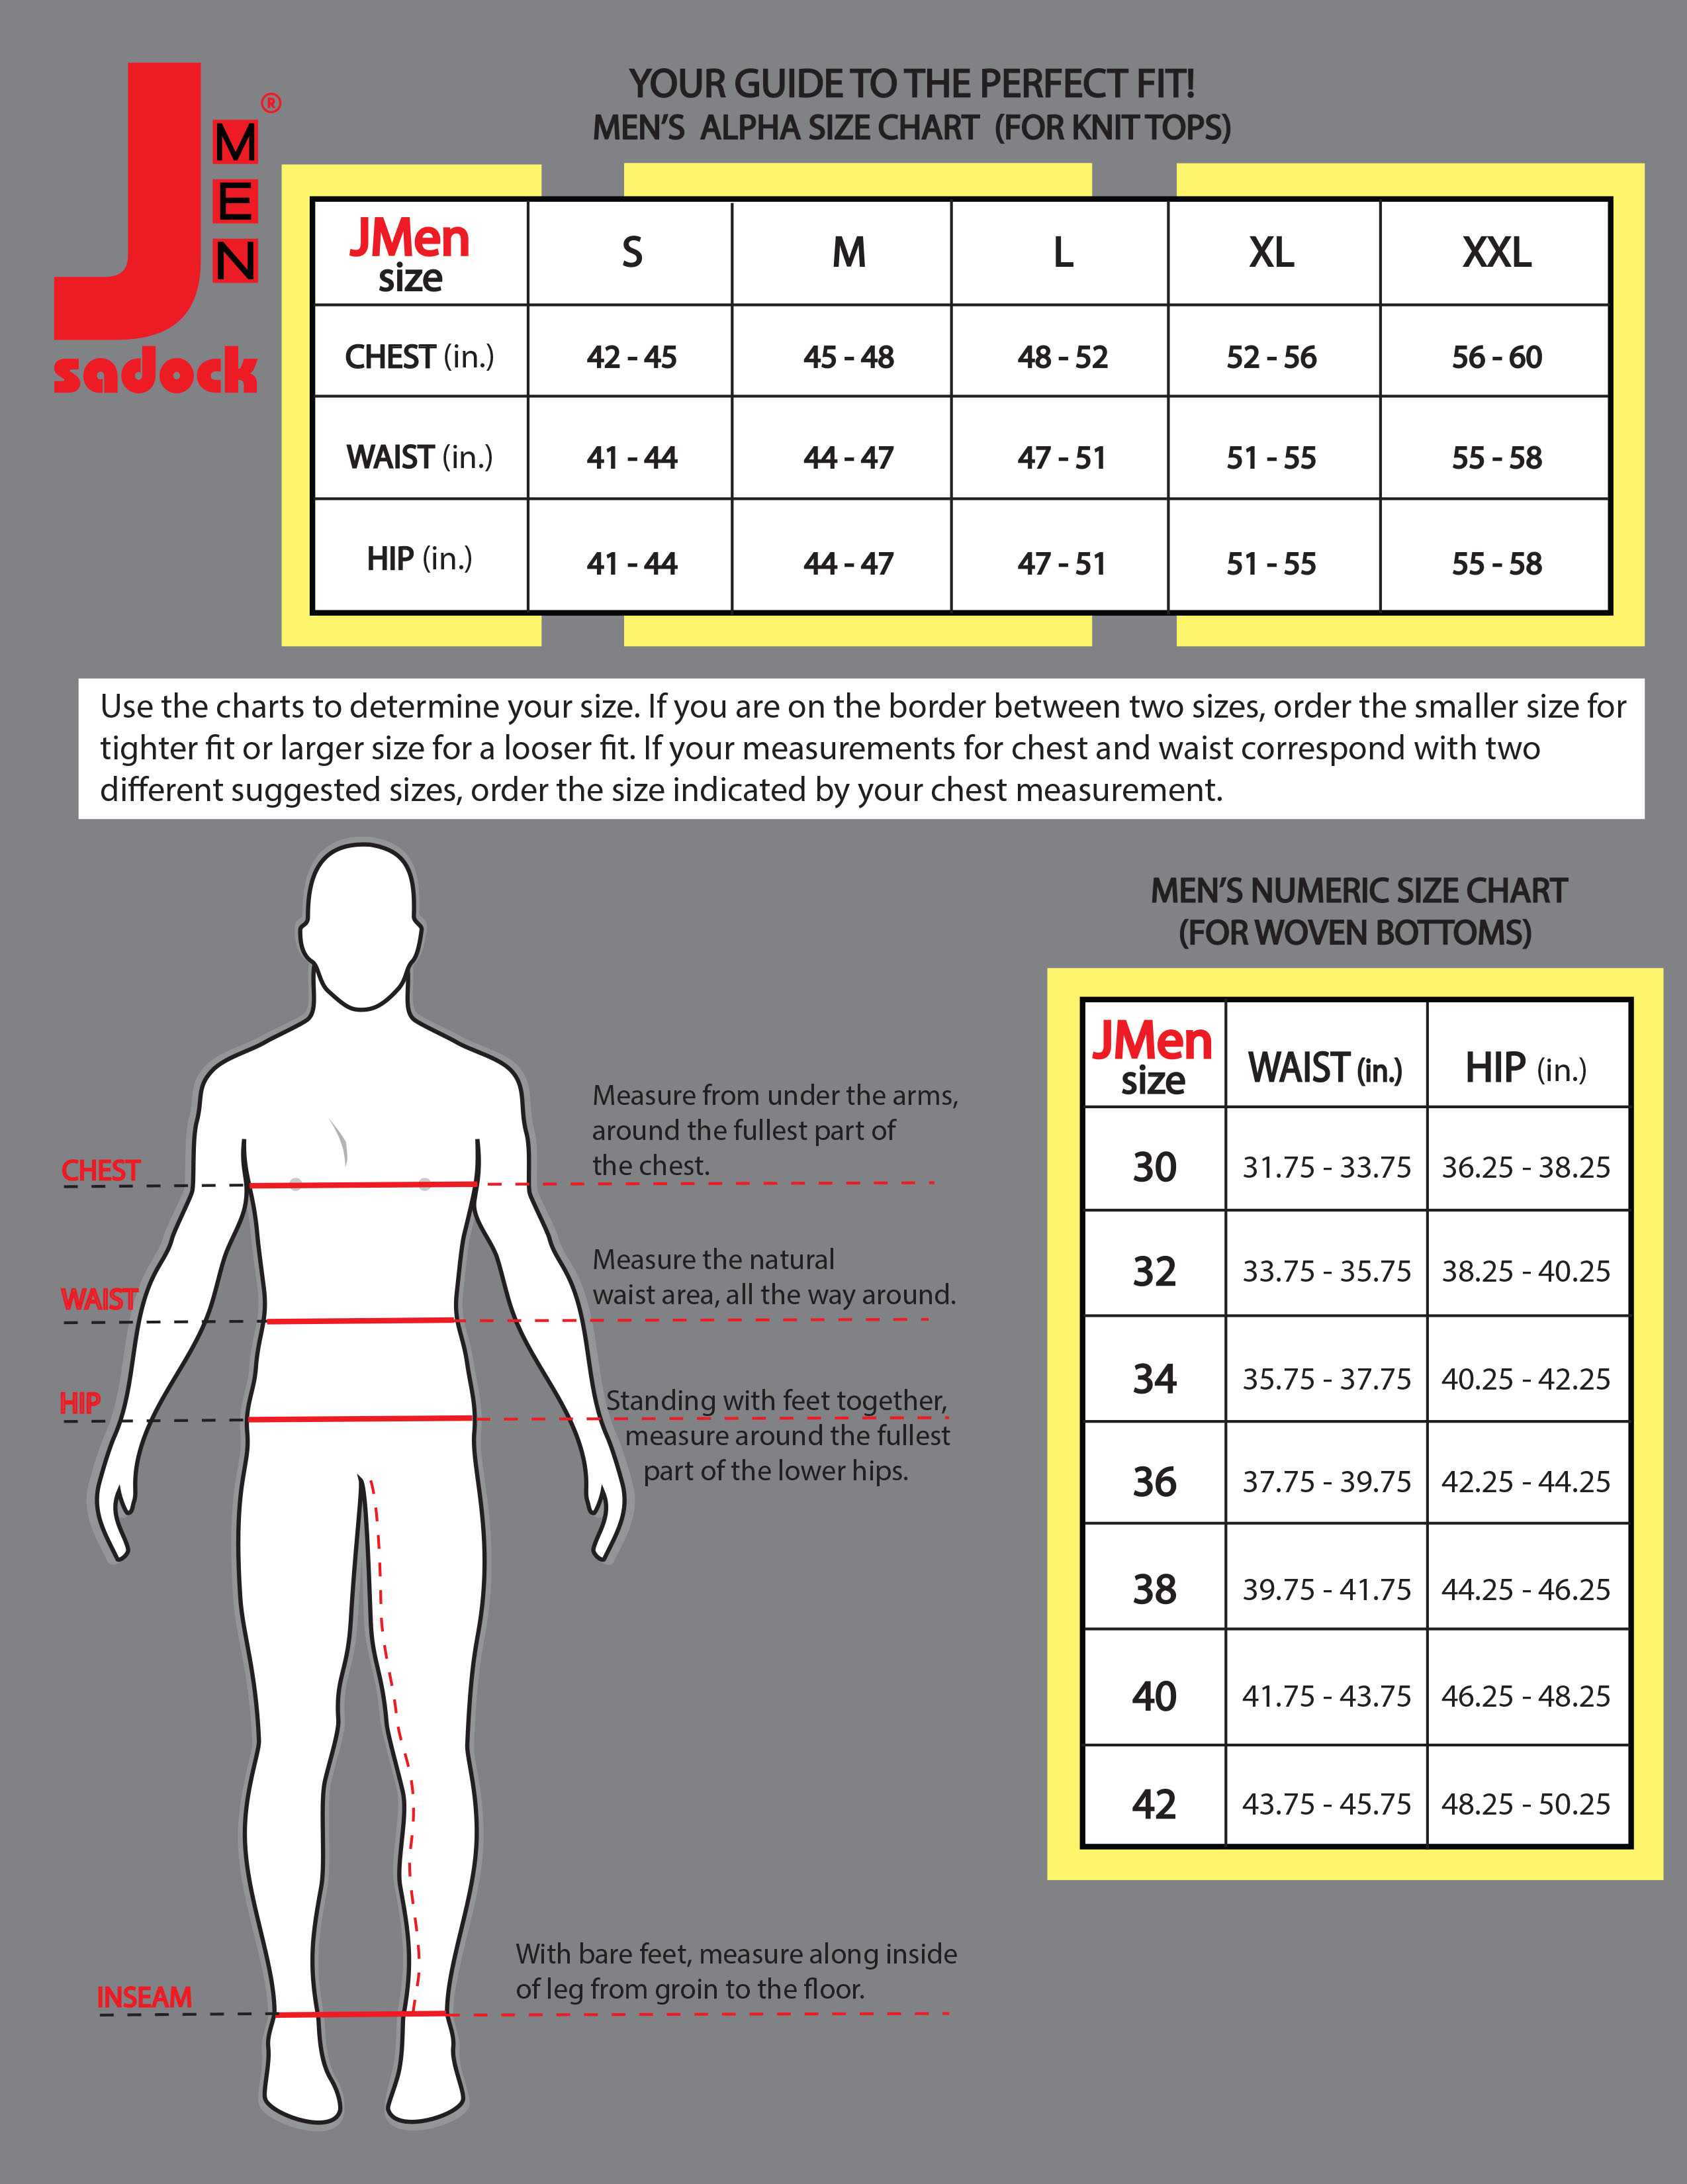 men-s-size-chart-for-website-sept-2020-hs.jpg